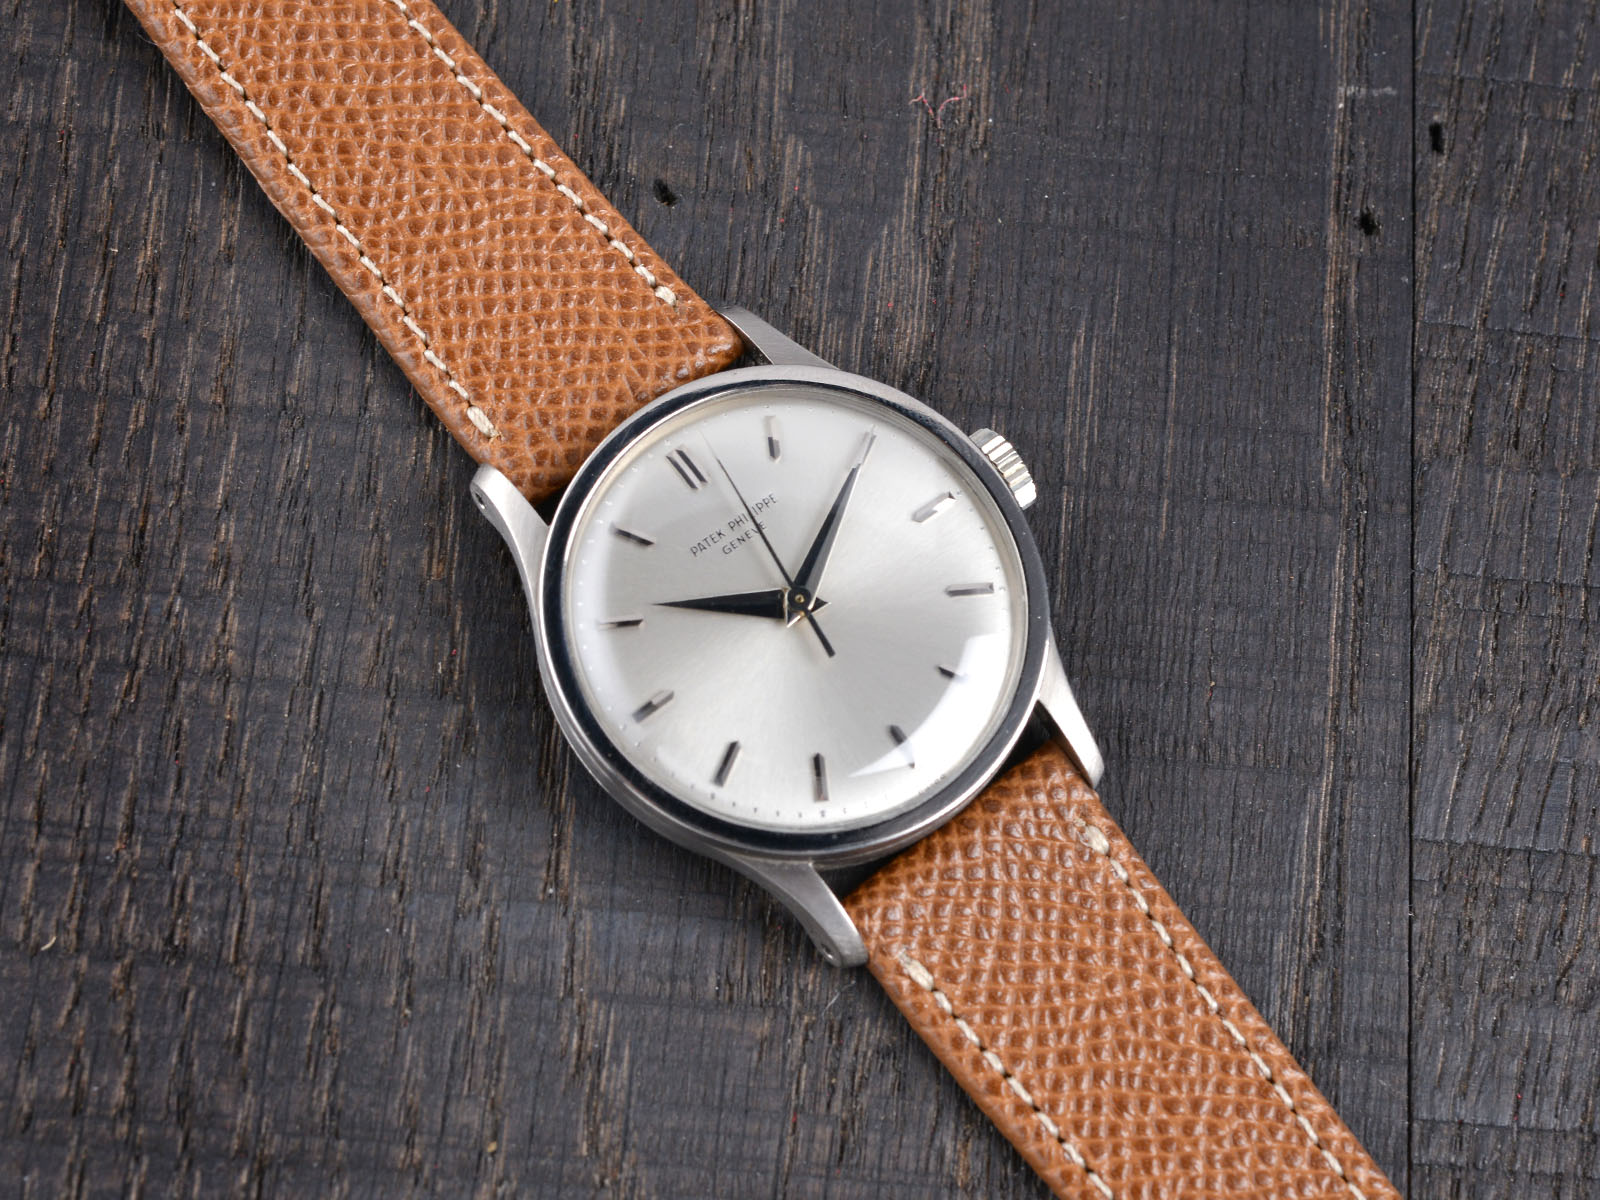 B&S 'Classy Caramel' Hand-made Leather Strap 20 mm